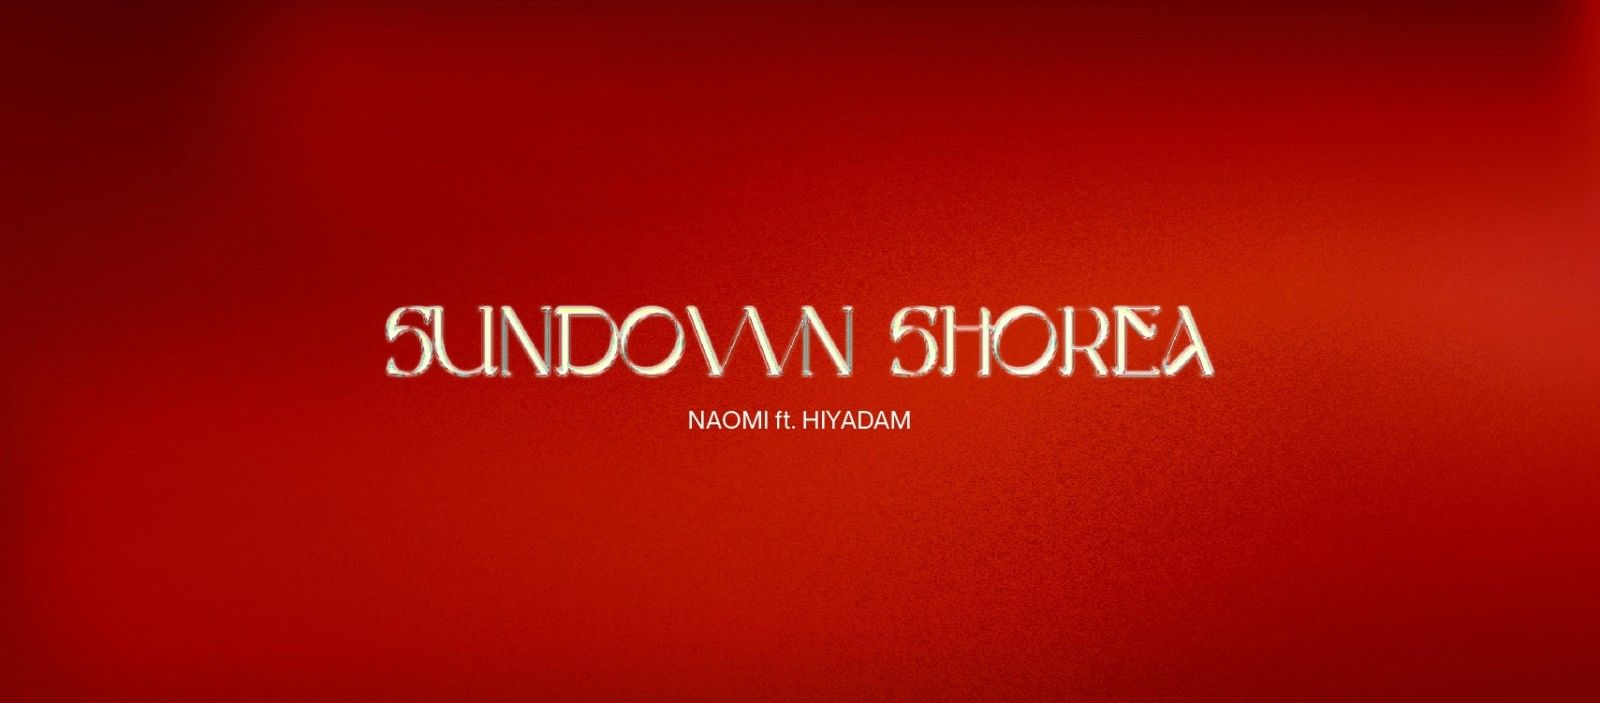 """Image of The song Sundown Shorea premieres at the """"sunset"""" of 2020, but will soon shine in the """"dawn"""" of 2021 with Naomi, Rapper HIYADAM and M.A.U Collective"""